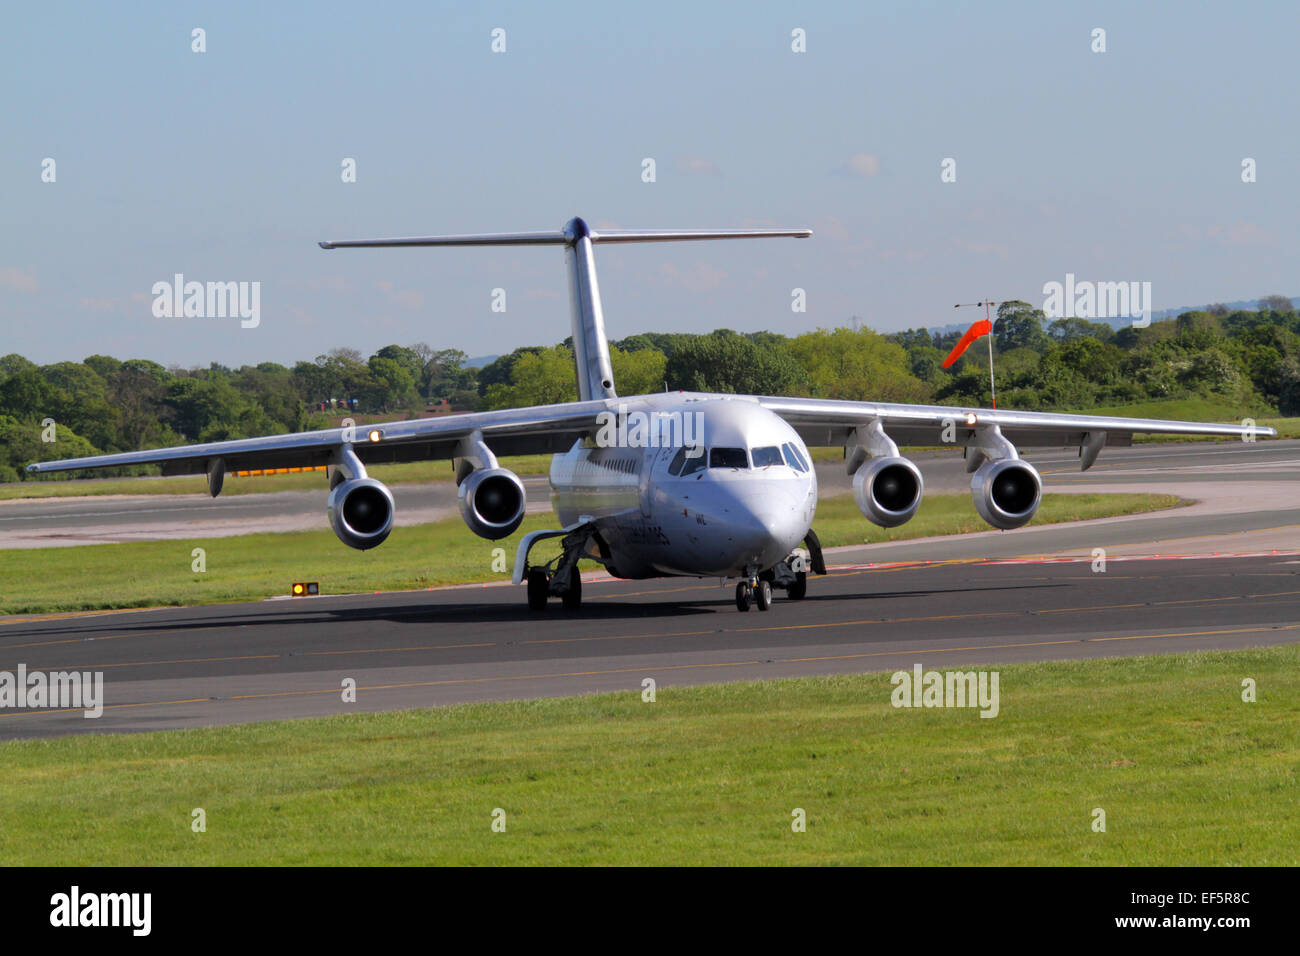 BRUSSELS AIRLINES AVRO RJ100 AIRCRAFT OO-DWL MANCHESTER AIRPORT ENGLAND 14 May 2014 - Stock Image